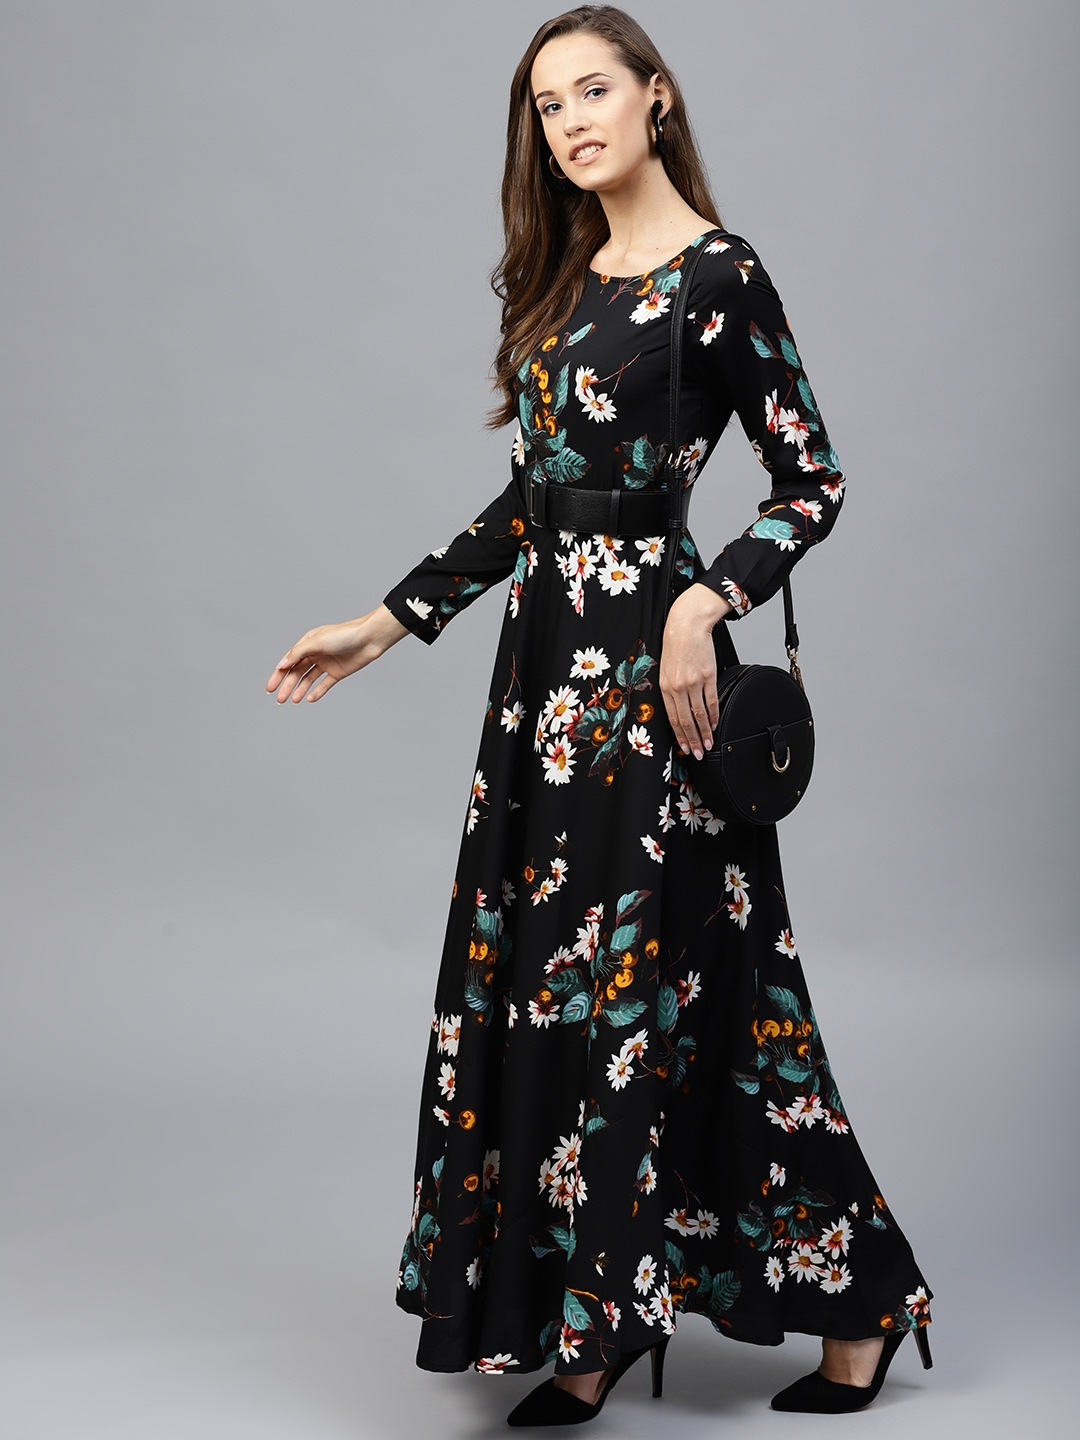 559a0bd936a Black Maxi Dresses – Fashion dresses